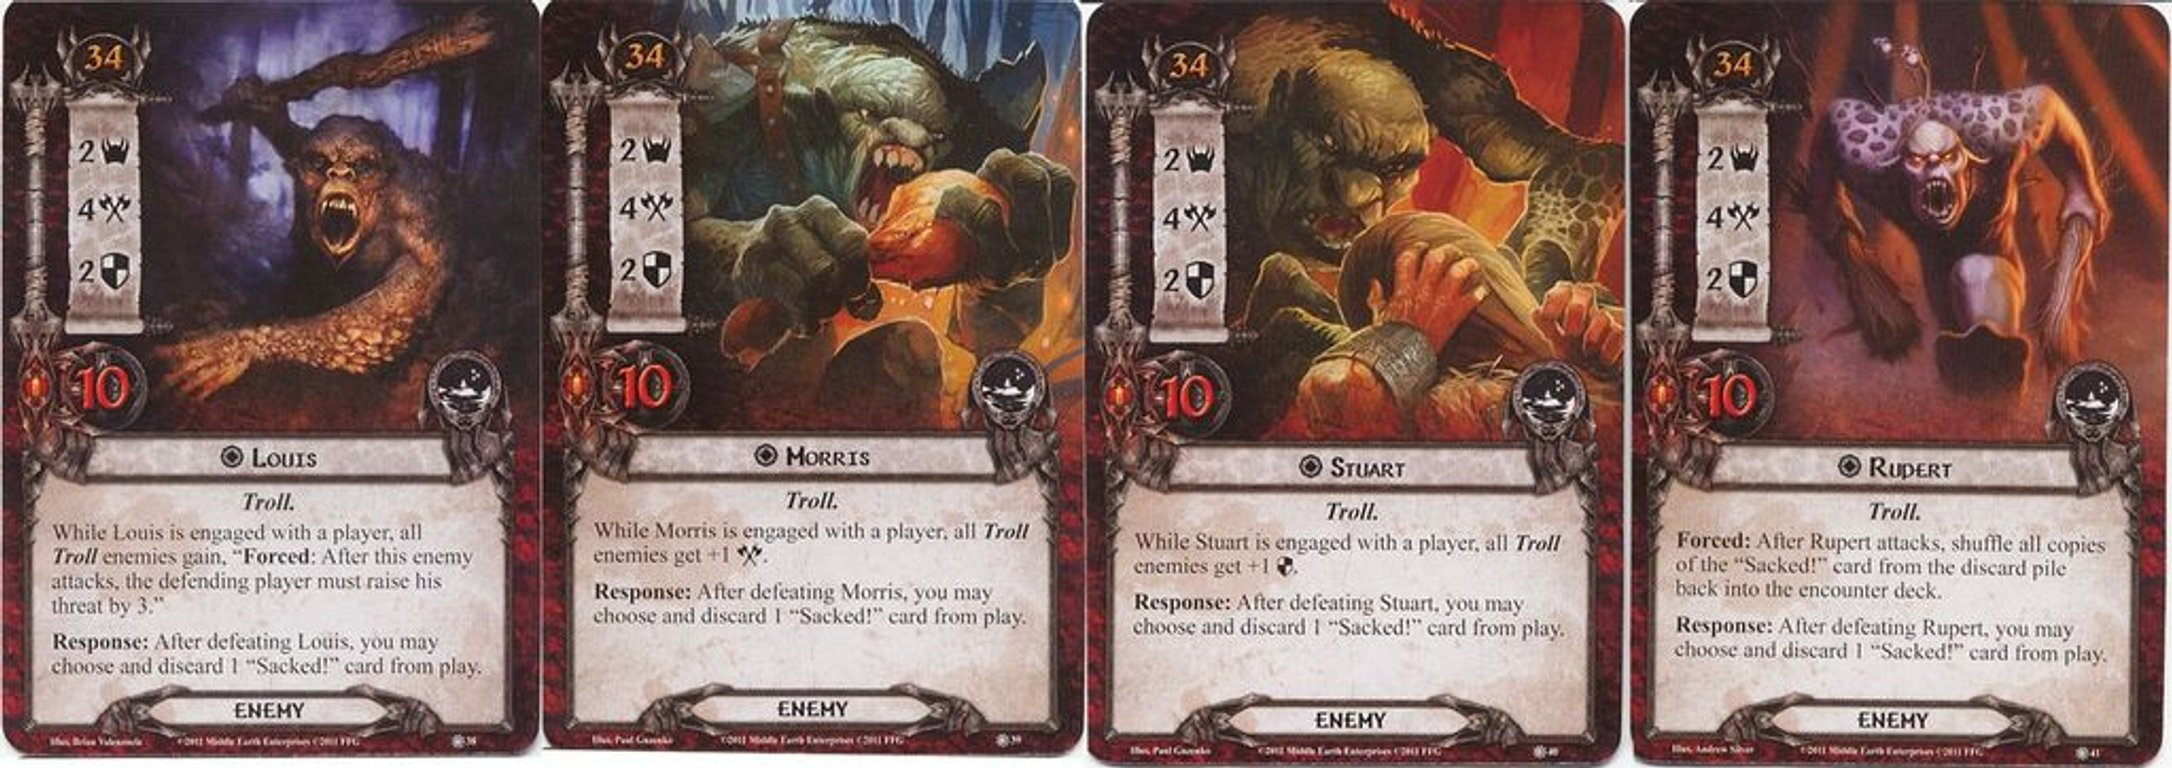 The Lord of the Rings: The Card Game - Conflict at the Carrock cards